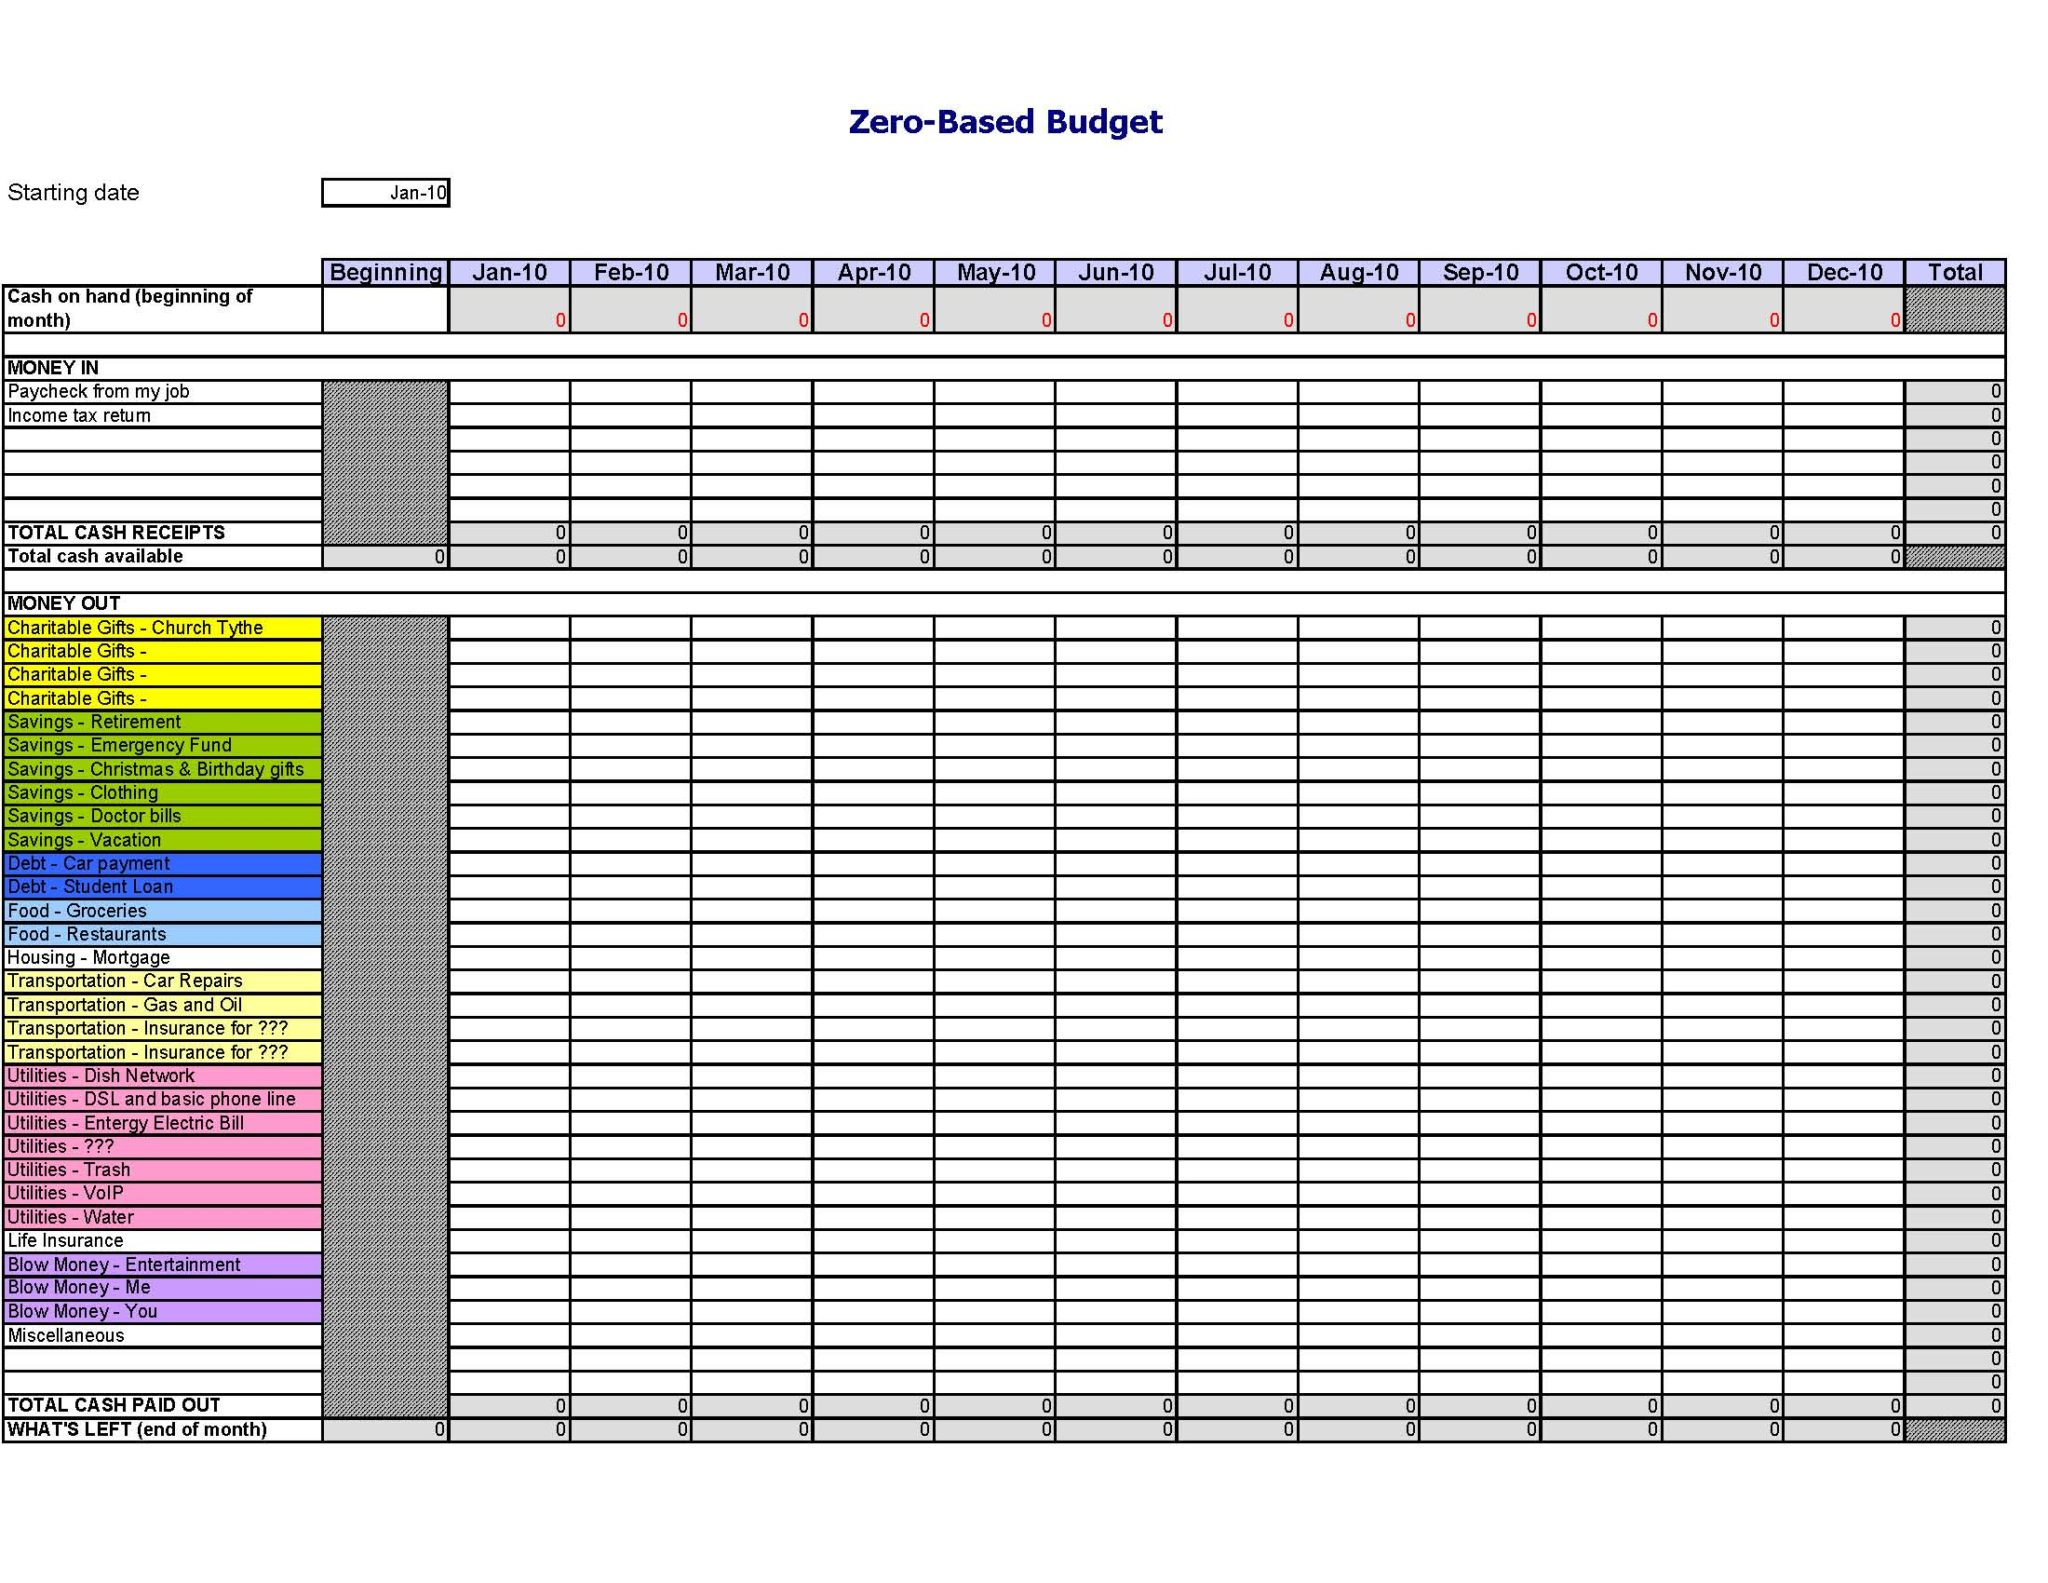 Sample Budget Spreadsheet Template; Sample Budget Spreadsheet For Non Profit